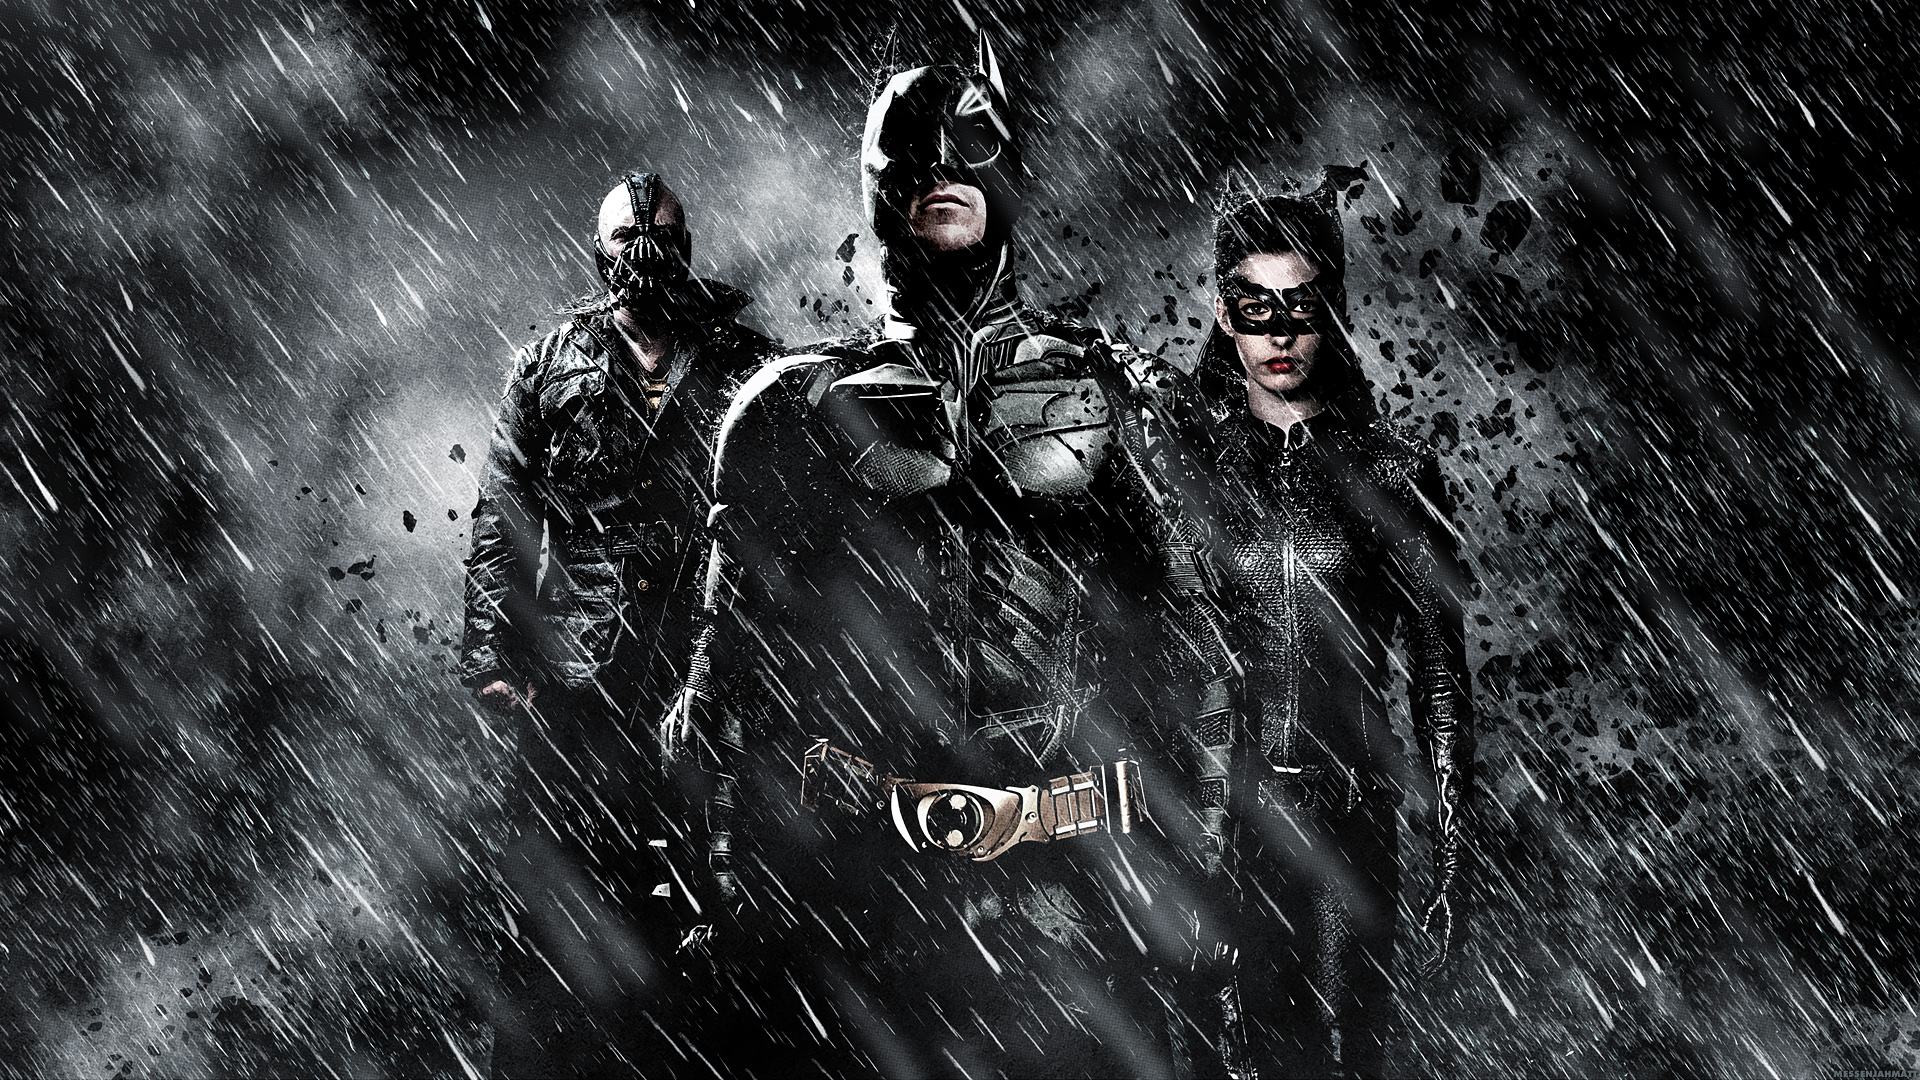 The Dark Knight Rises Movie Wallpapers HD Wallpapers 1920x1080